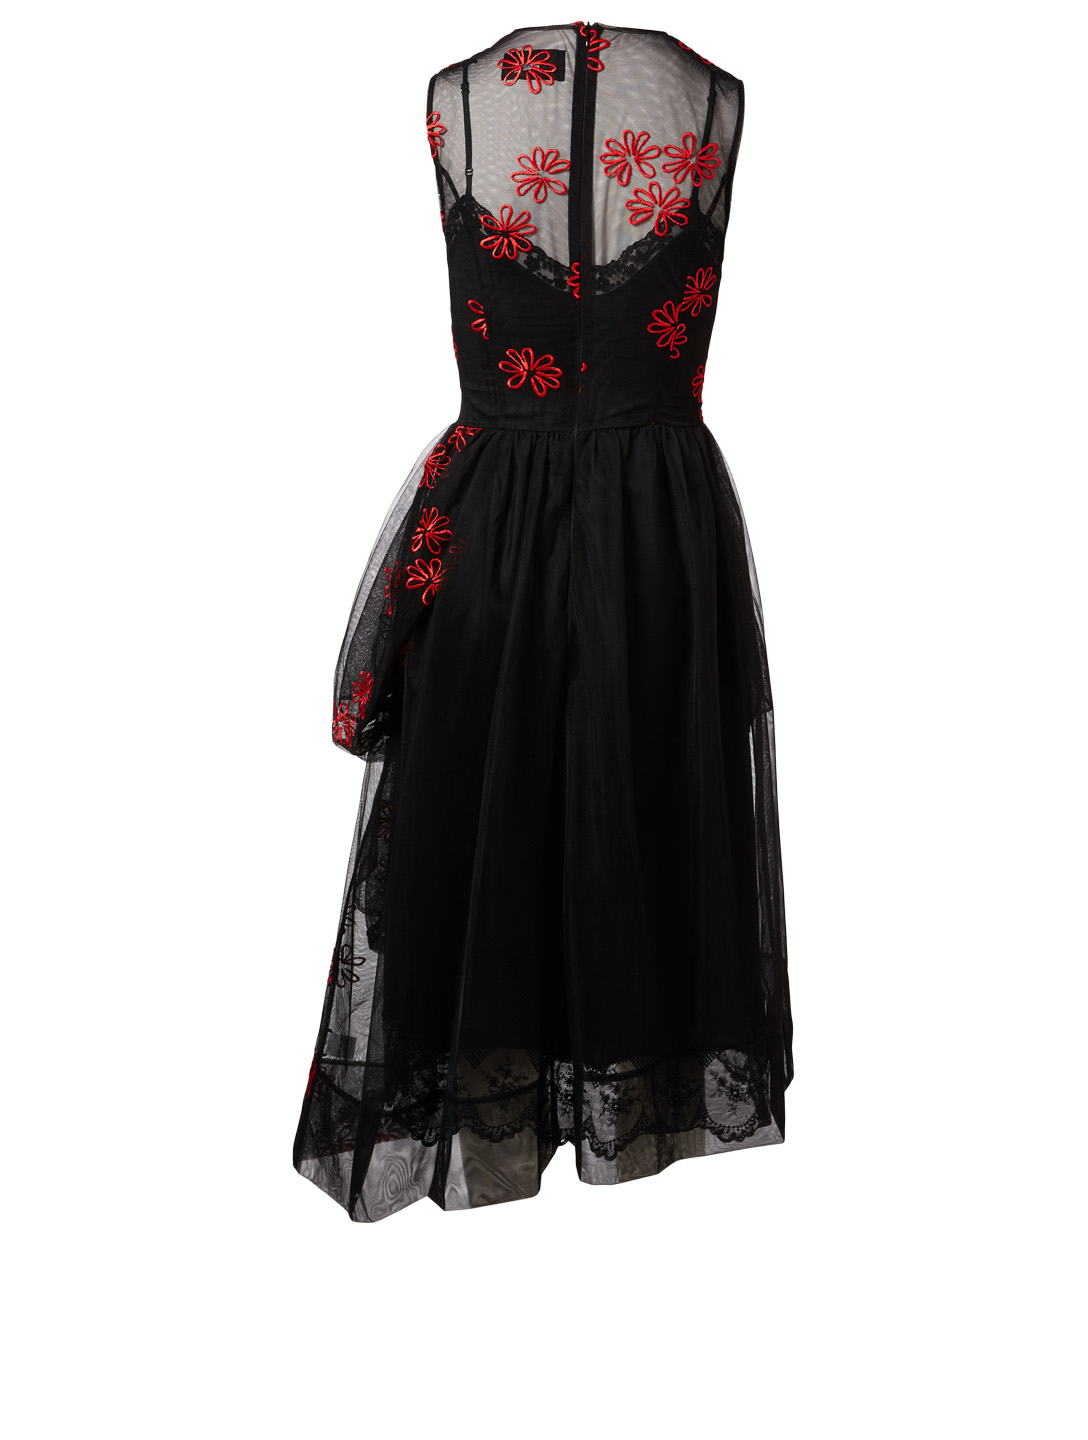 SIMONE ROCHA Tulle Gathered Patchwork Dress Womens Black